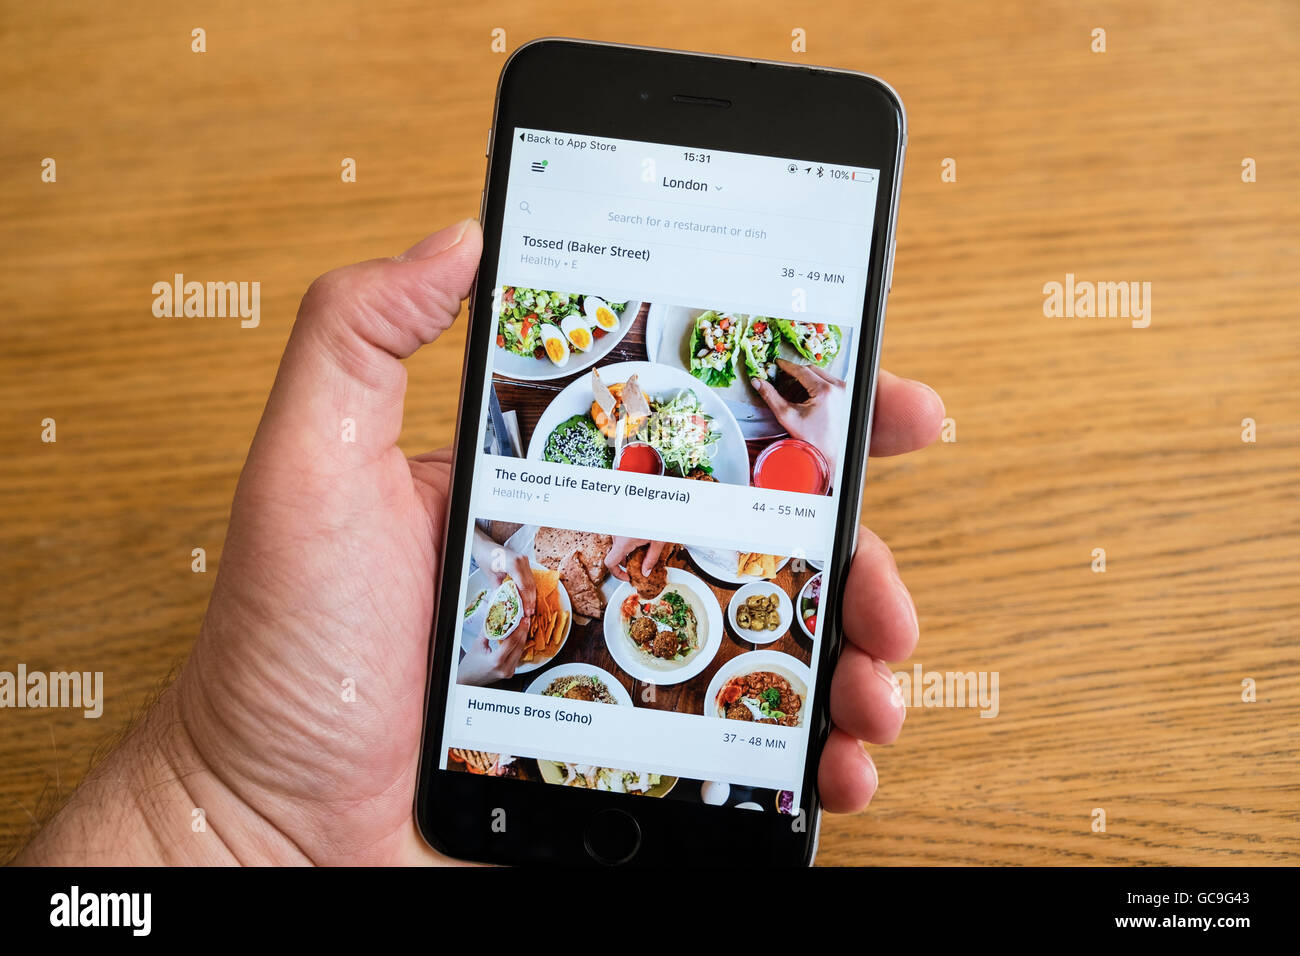 Meal Delivery Stock Photos & Meal Delivery Stock Images - Alamy